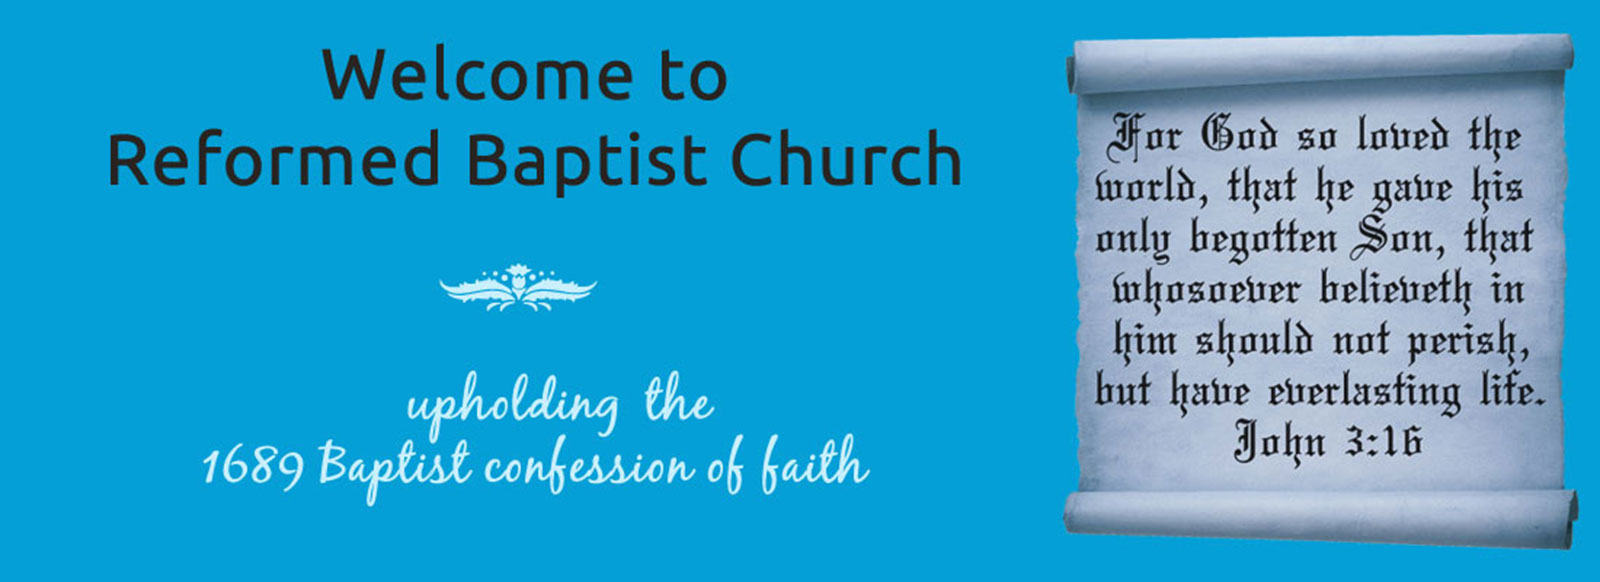 Welcome to Reformed Baptist Church, We publish tamil christian messages every week